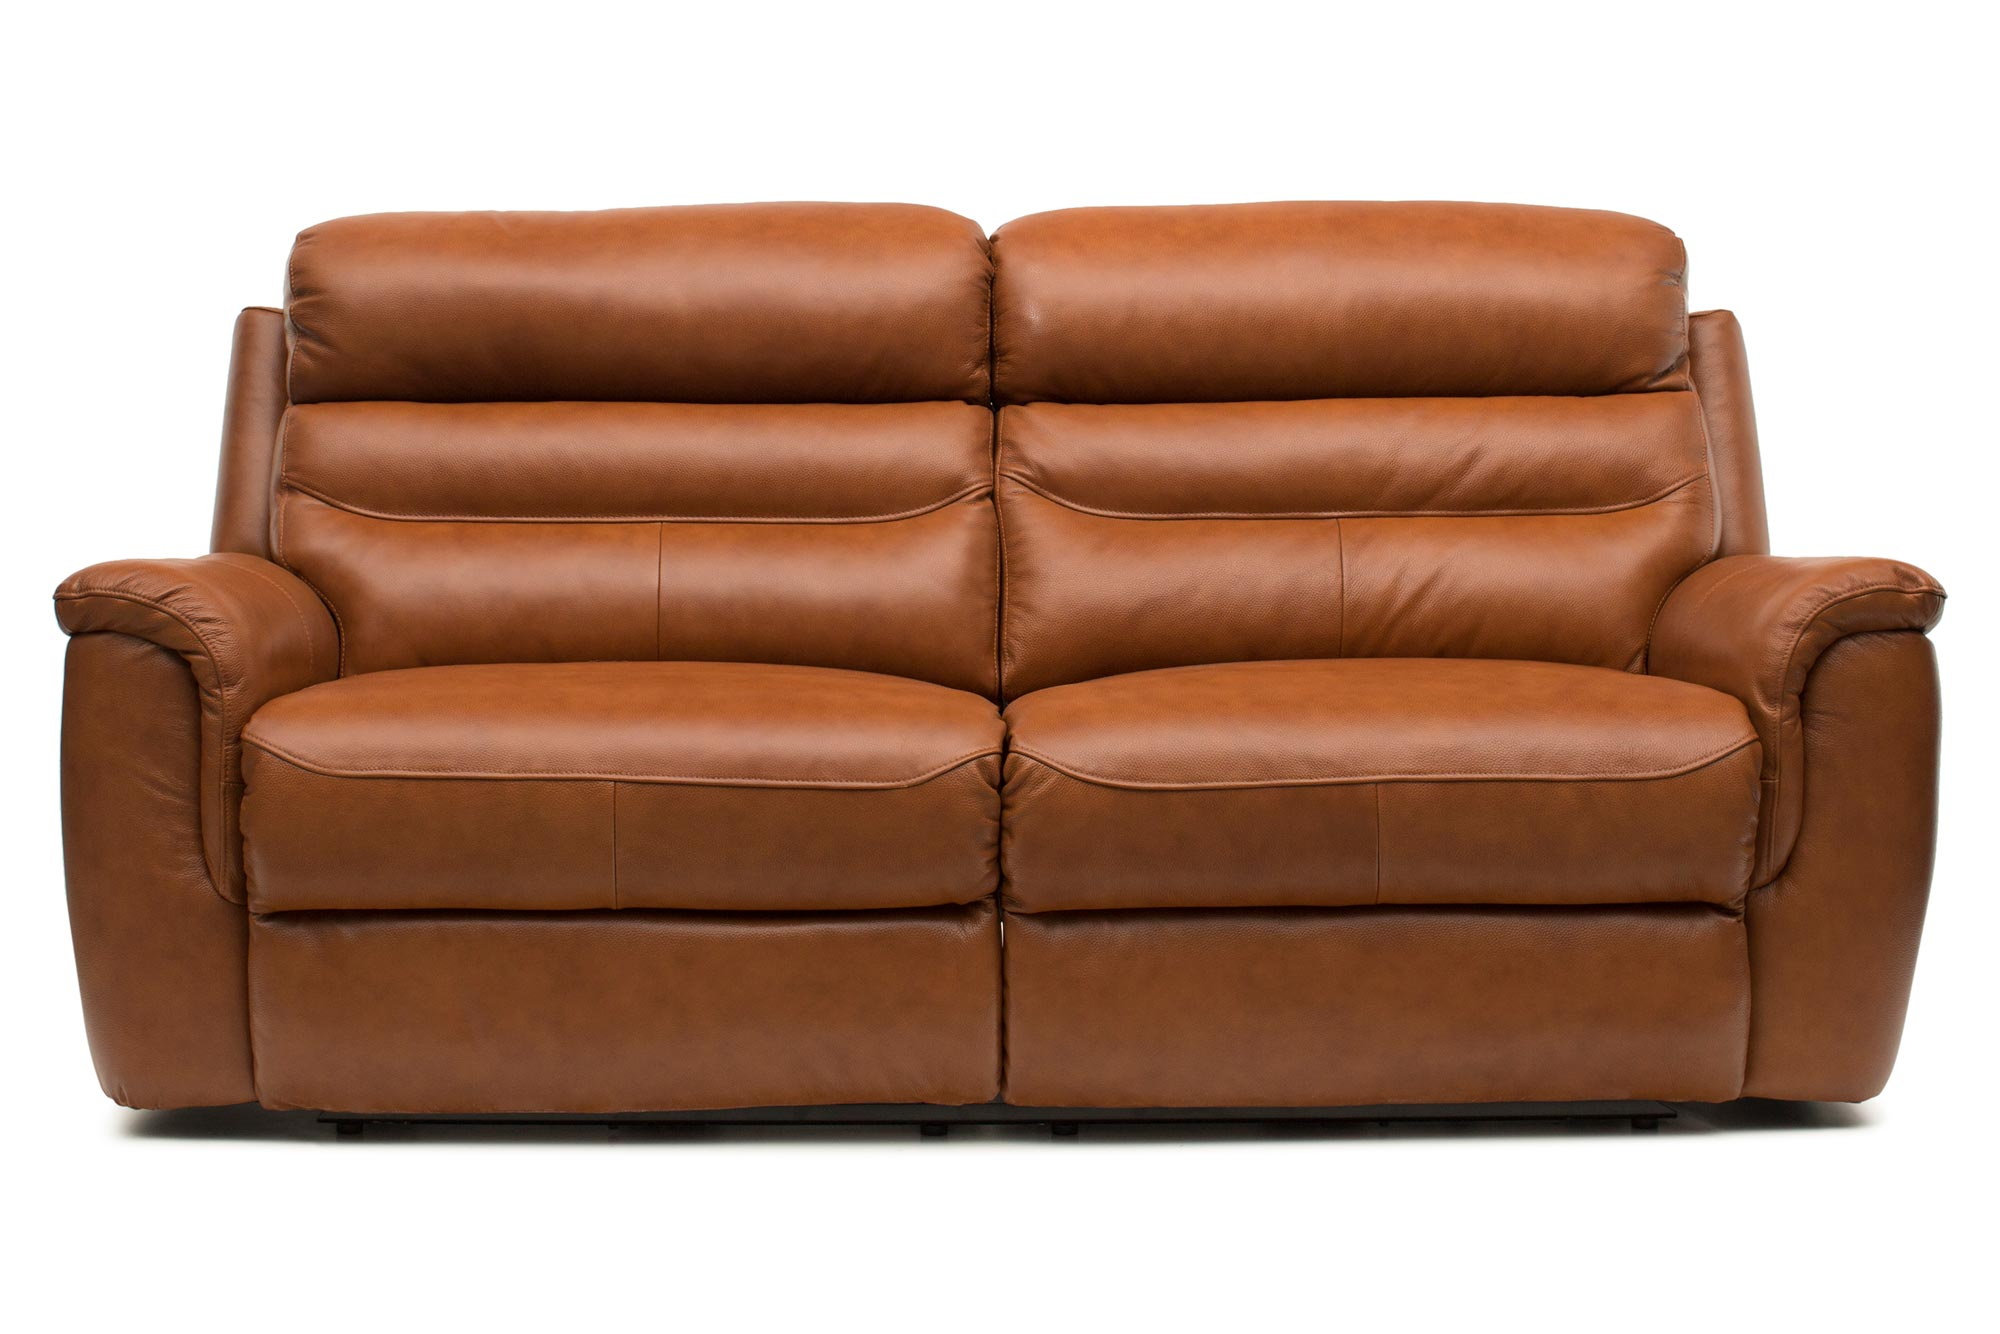 e10734816316 Bayle 2 Seater Recliner | Manual | Leather | Ireland